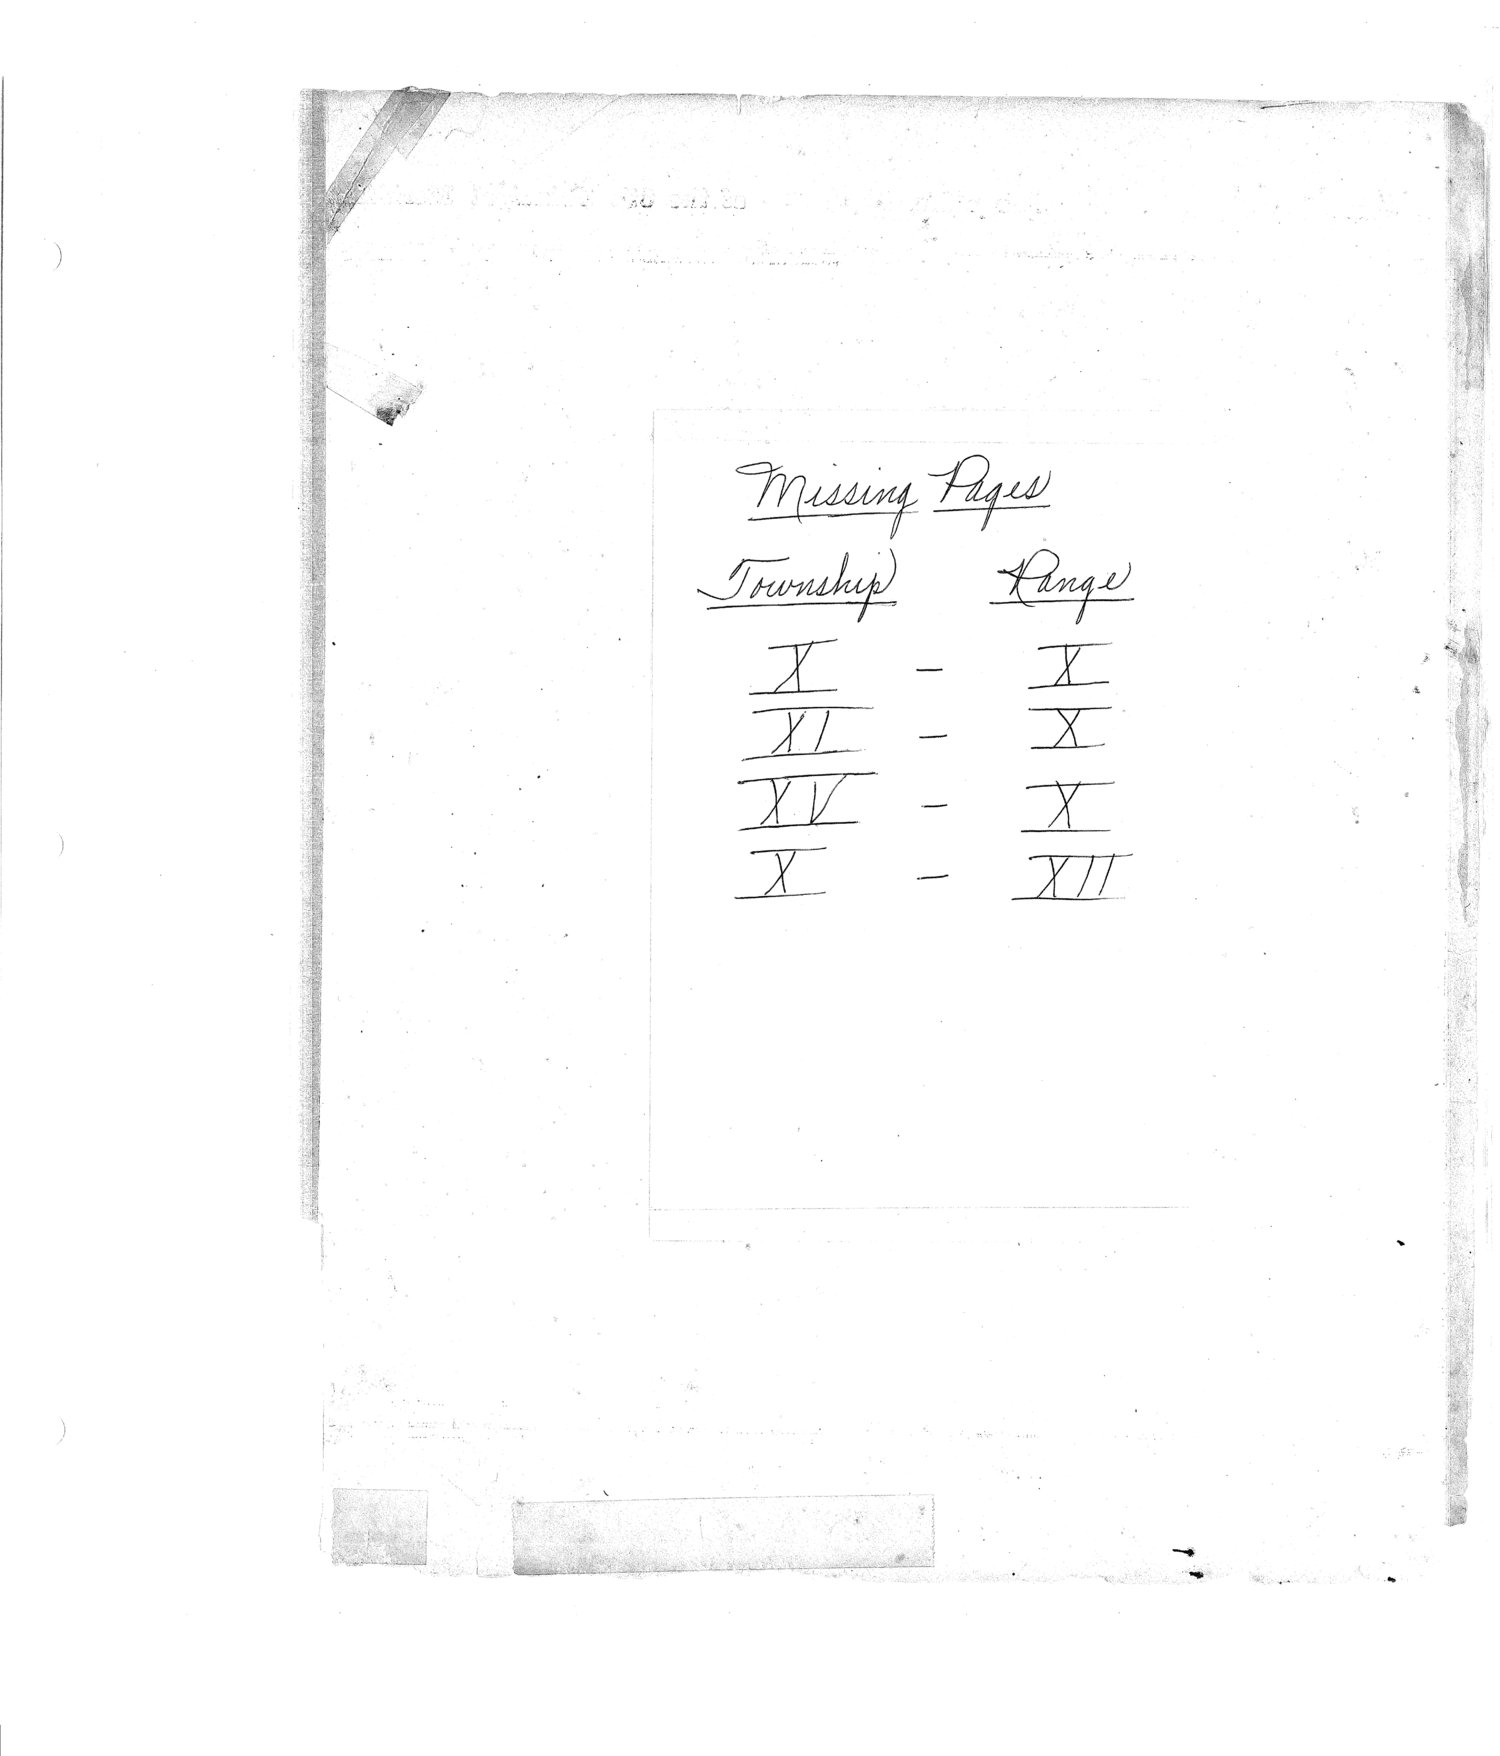 Richardson County and Wabaunsee County, Kansas, survey - Missing pages